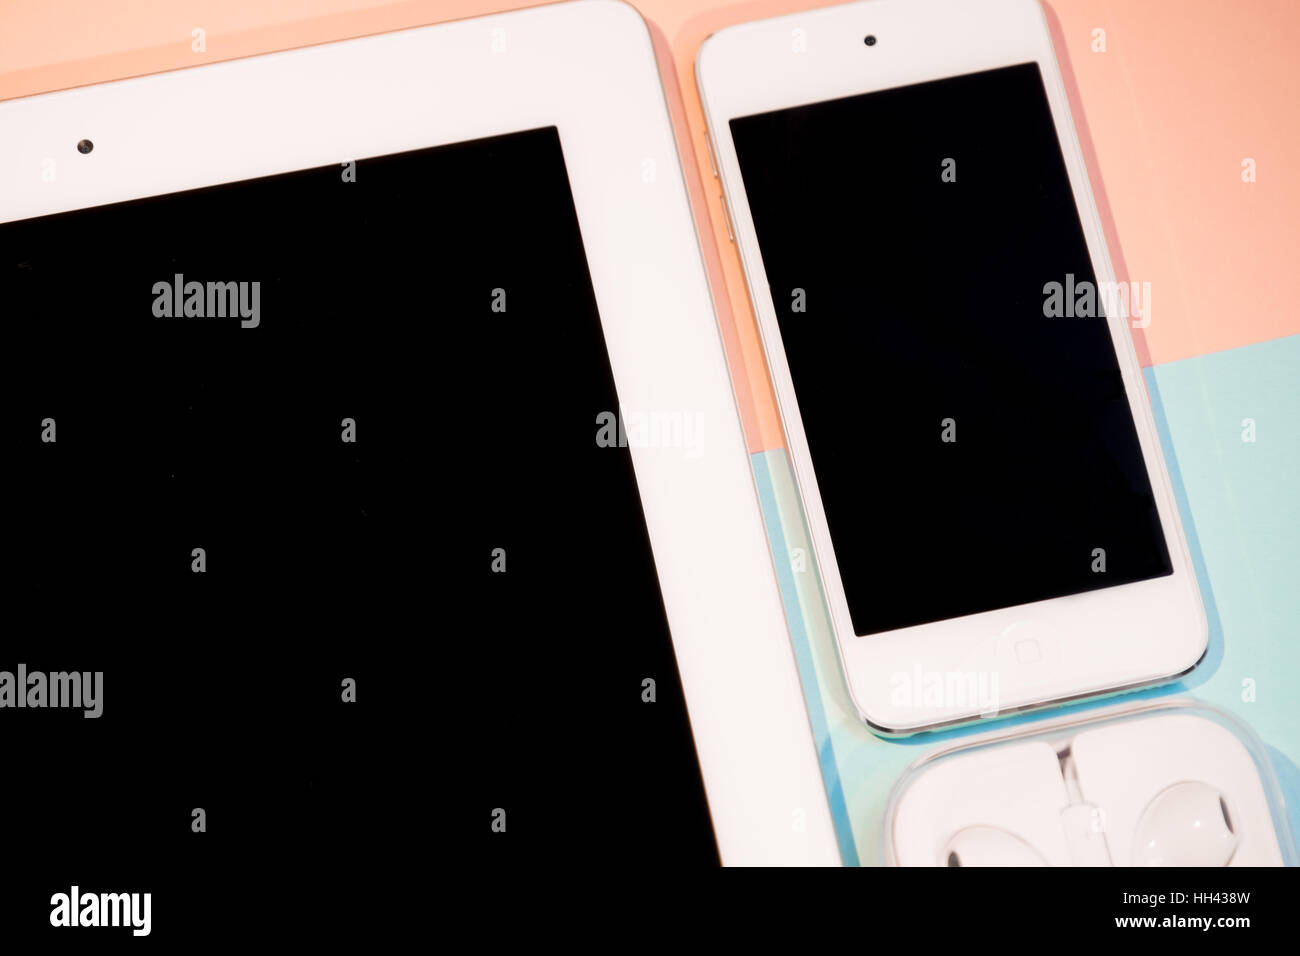 Tablet, smart phone and headphones against two-tone pink and aqua background - Stock Image